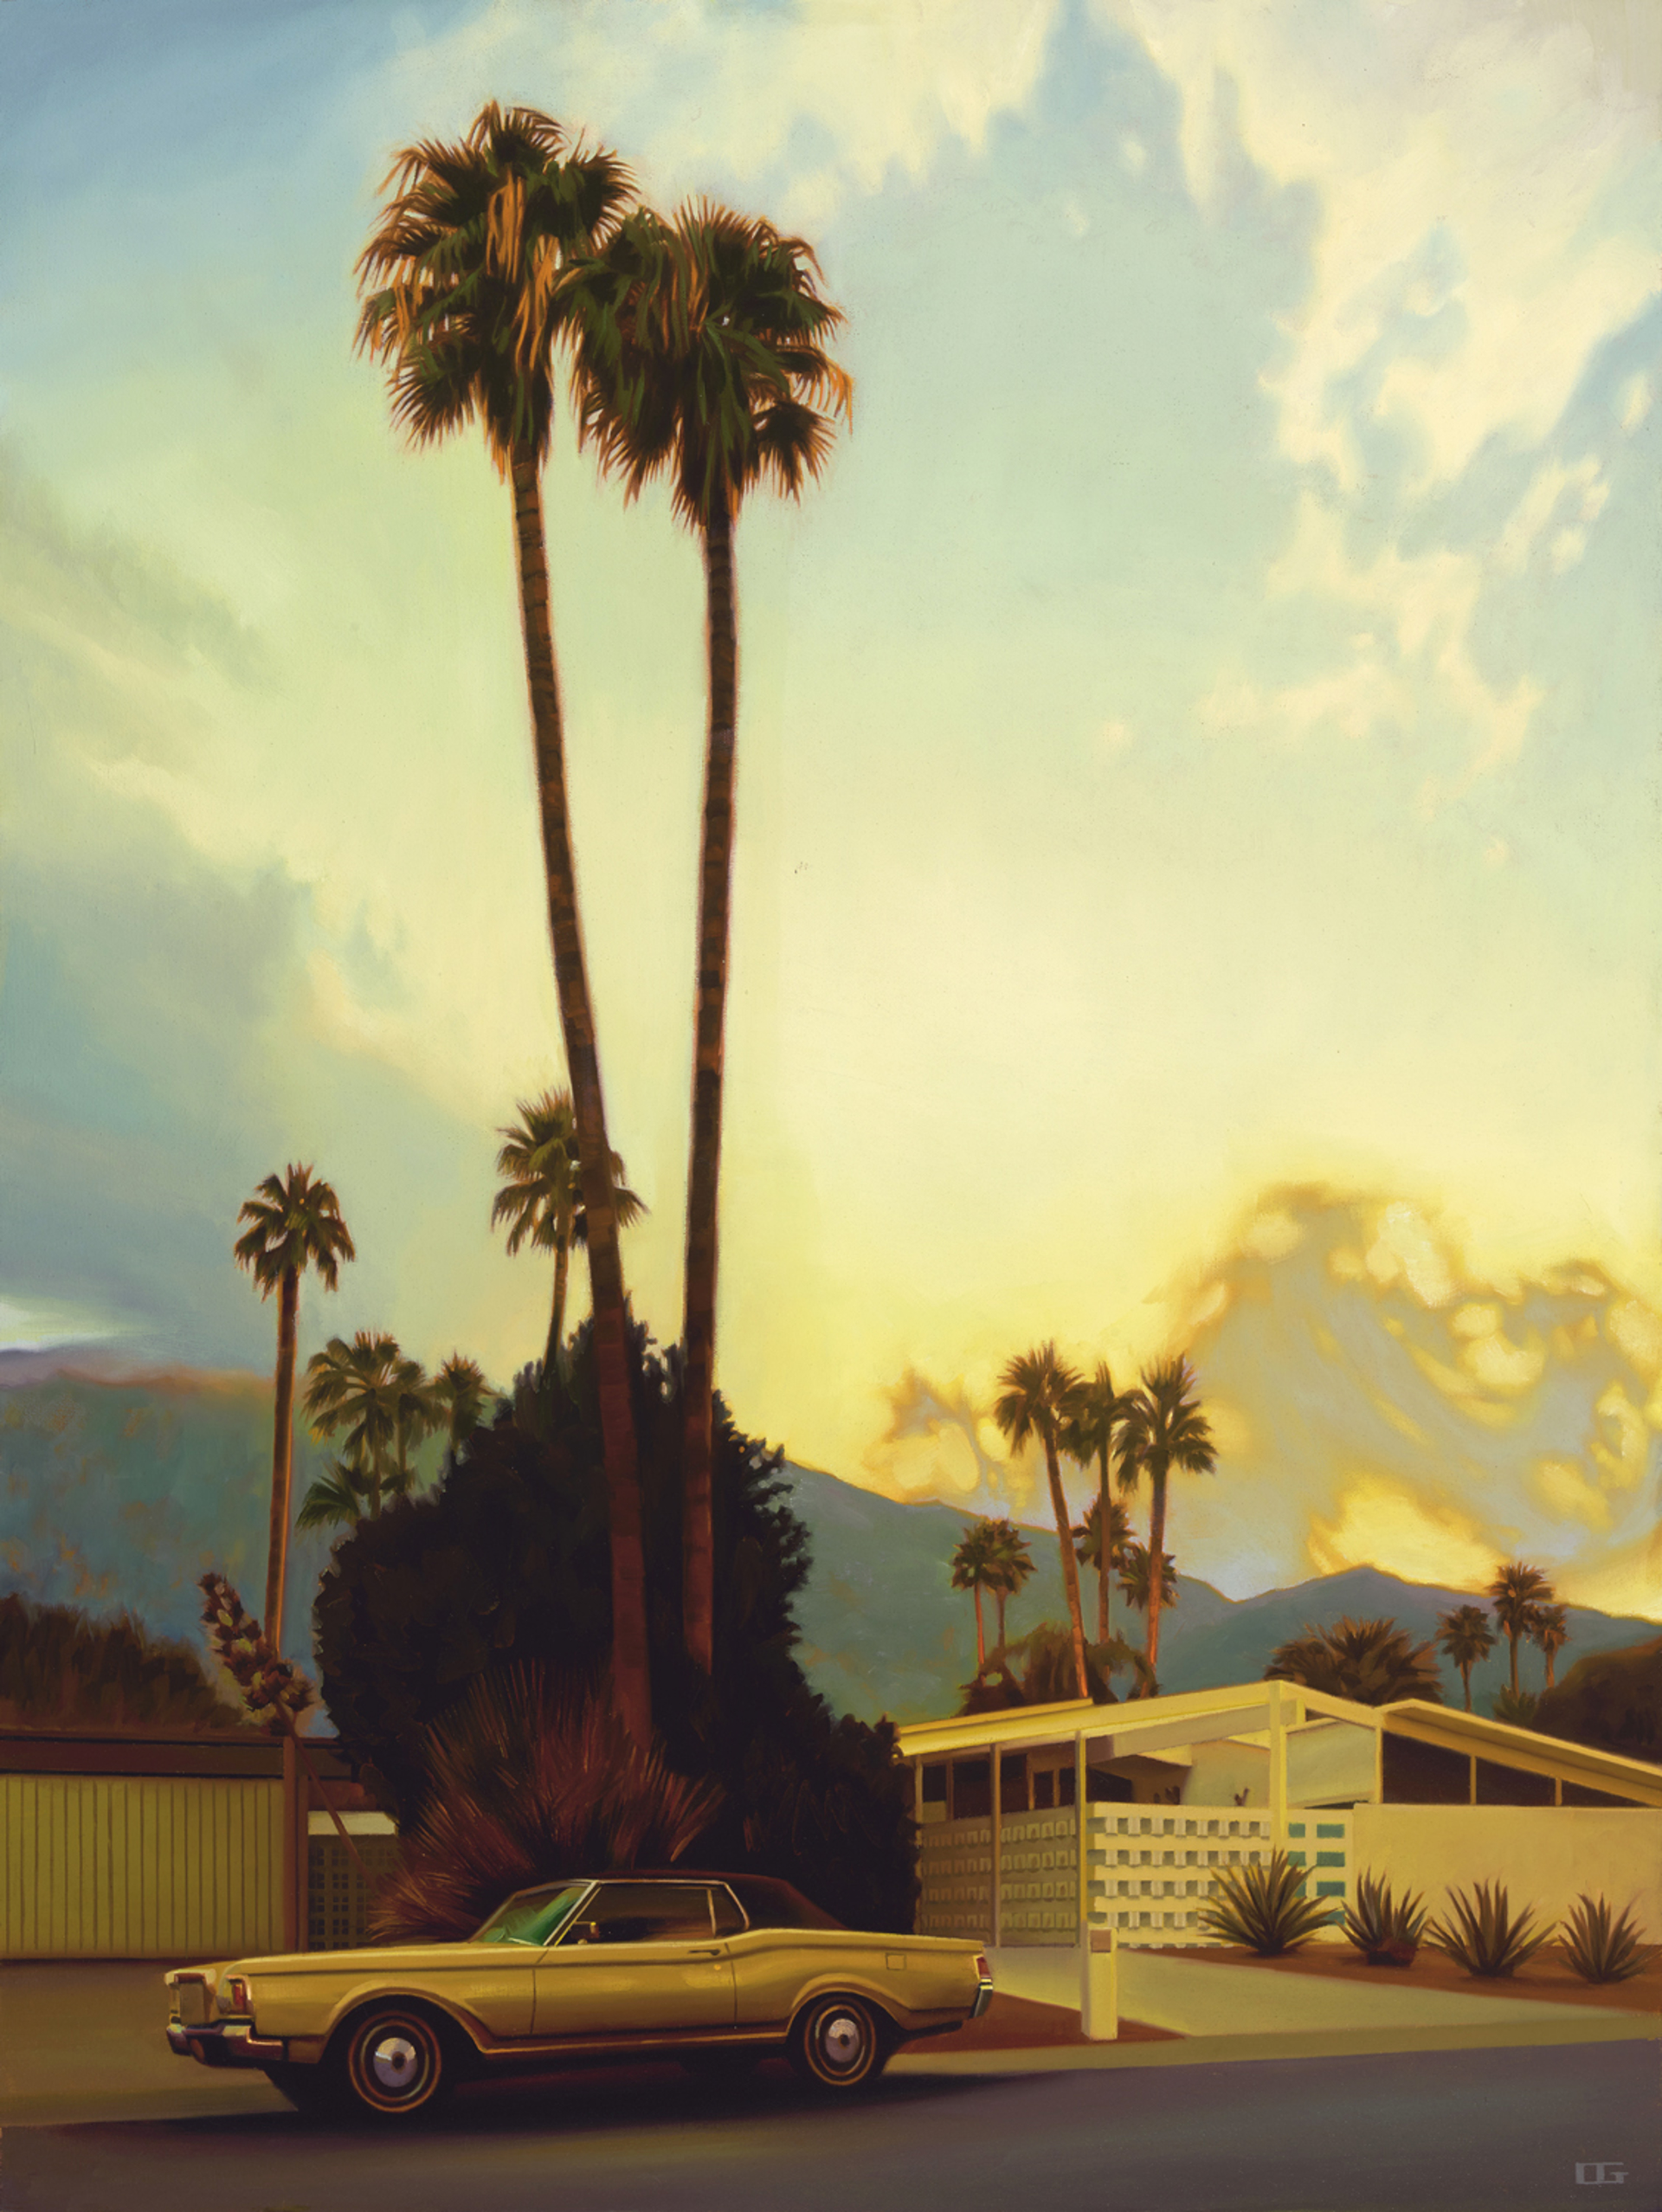 The Dinner Hour on Fair Circle (S/N) by Carrie Graber